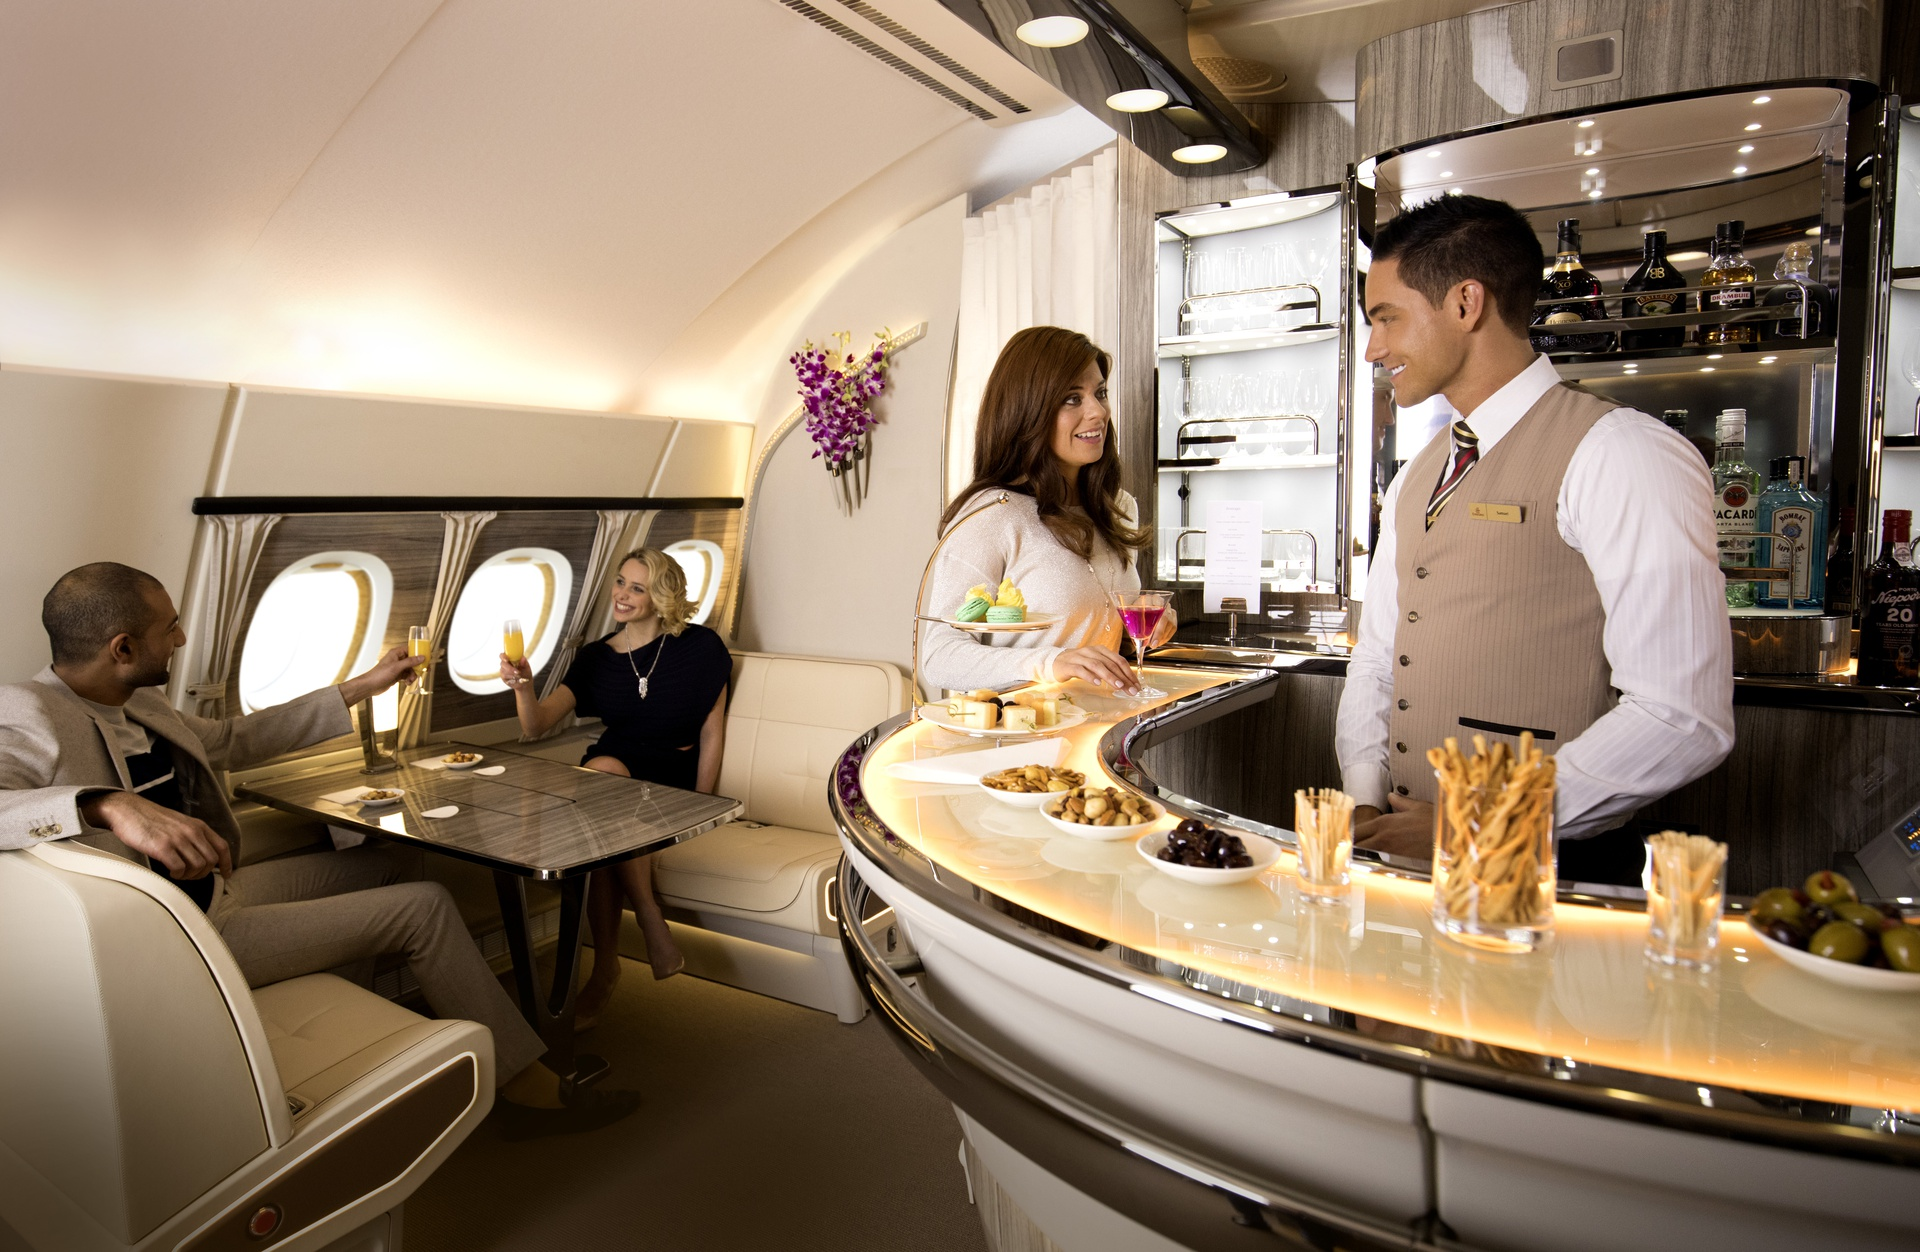 Emirates Skywards members can now achieve their next Emirates Skywards tier faster thanks to an exciting new offer to earn up to double Tier Miles on flights.